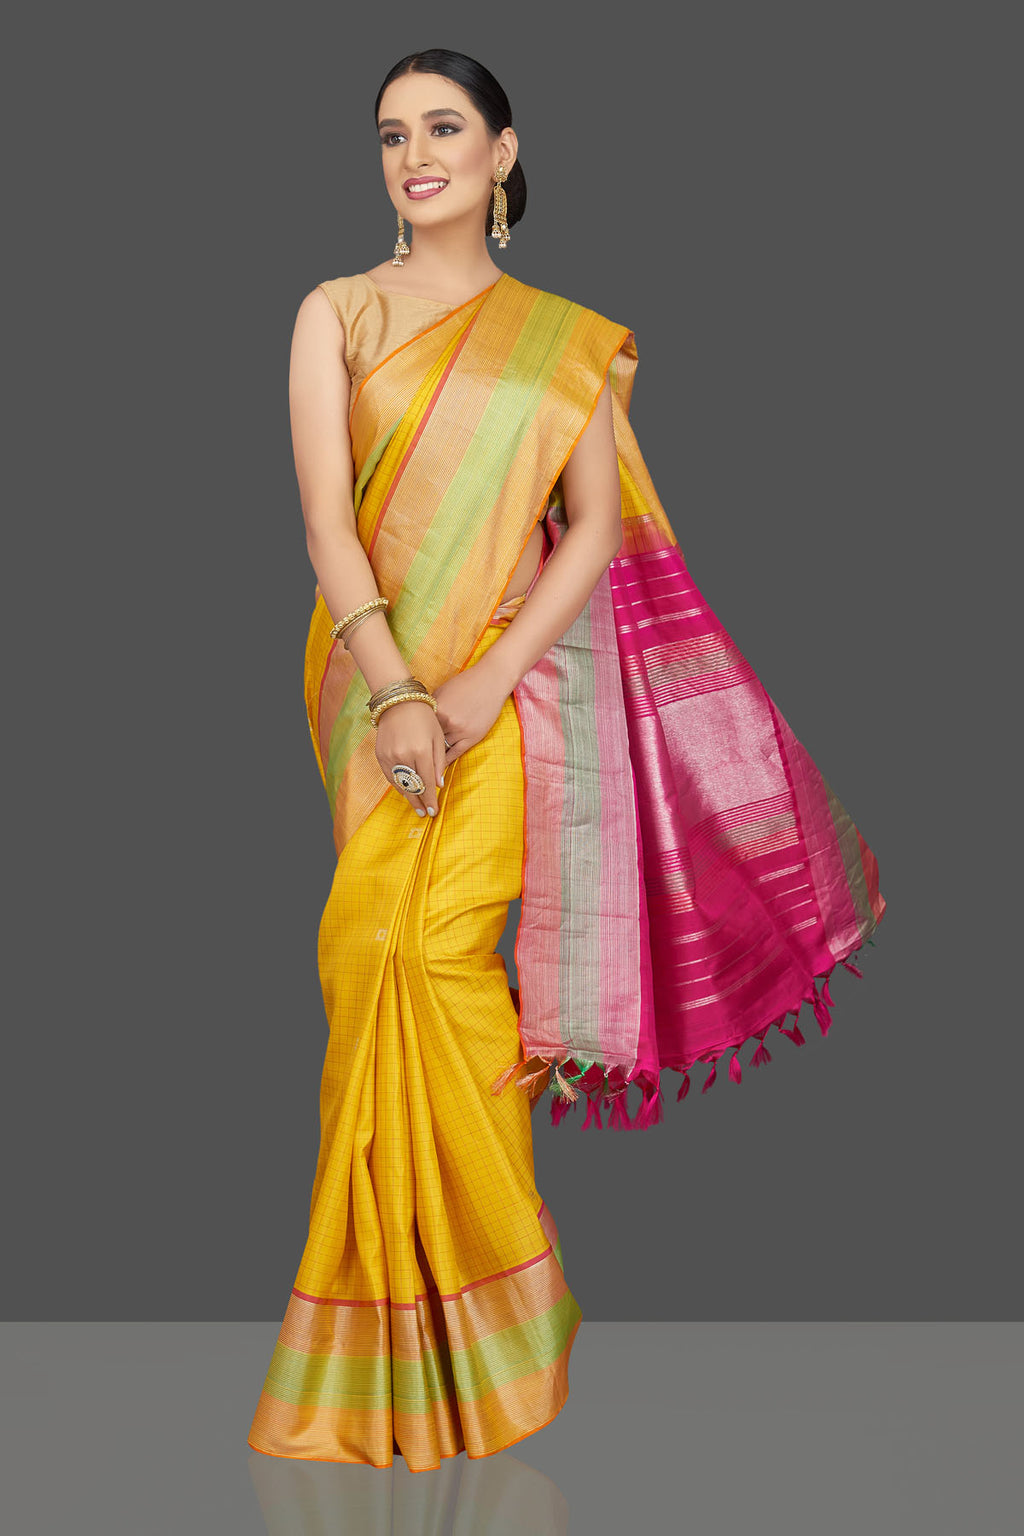 Buy beautiful yellow check Kanjivaram saree online in USA with pink zari pallu. Look beautiful on weddings and special occasions in stunning Kanchipuram saris, pure silk sarees, handwoven saris from Pure Elegance Indian fashion store in USA.-full view